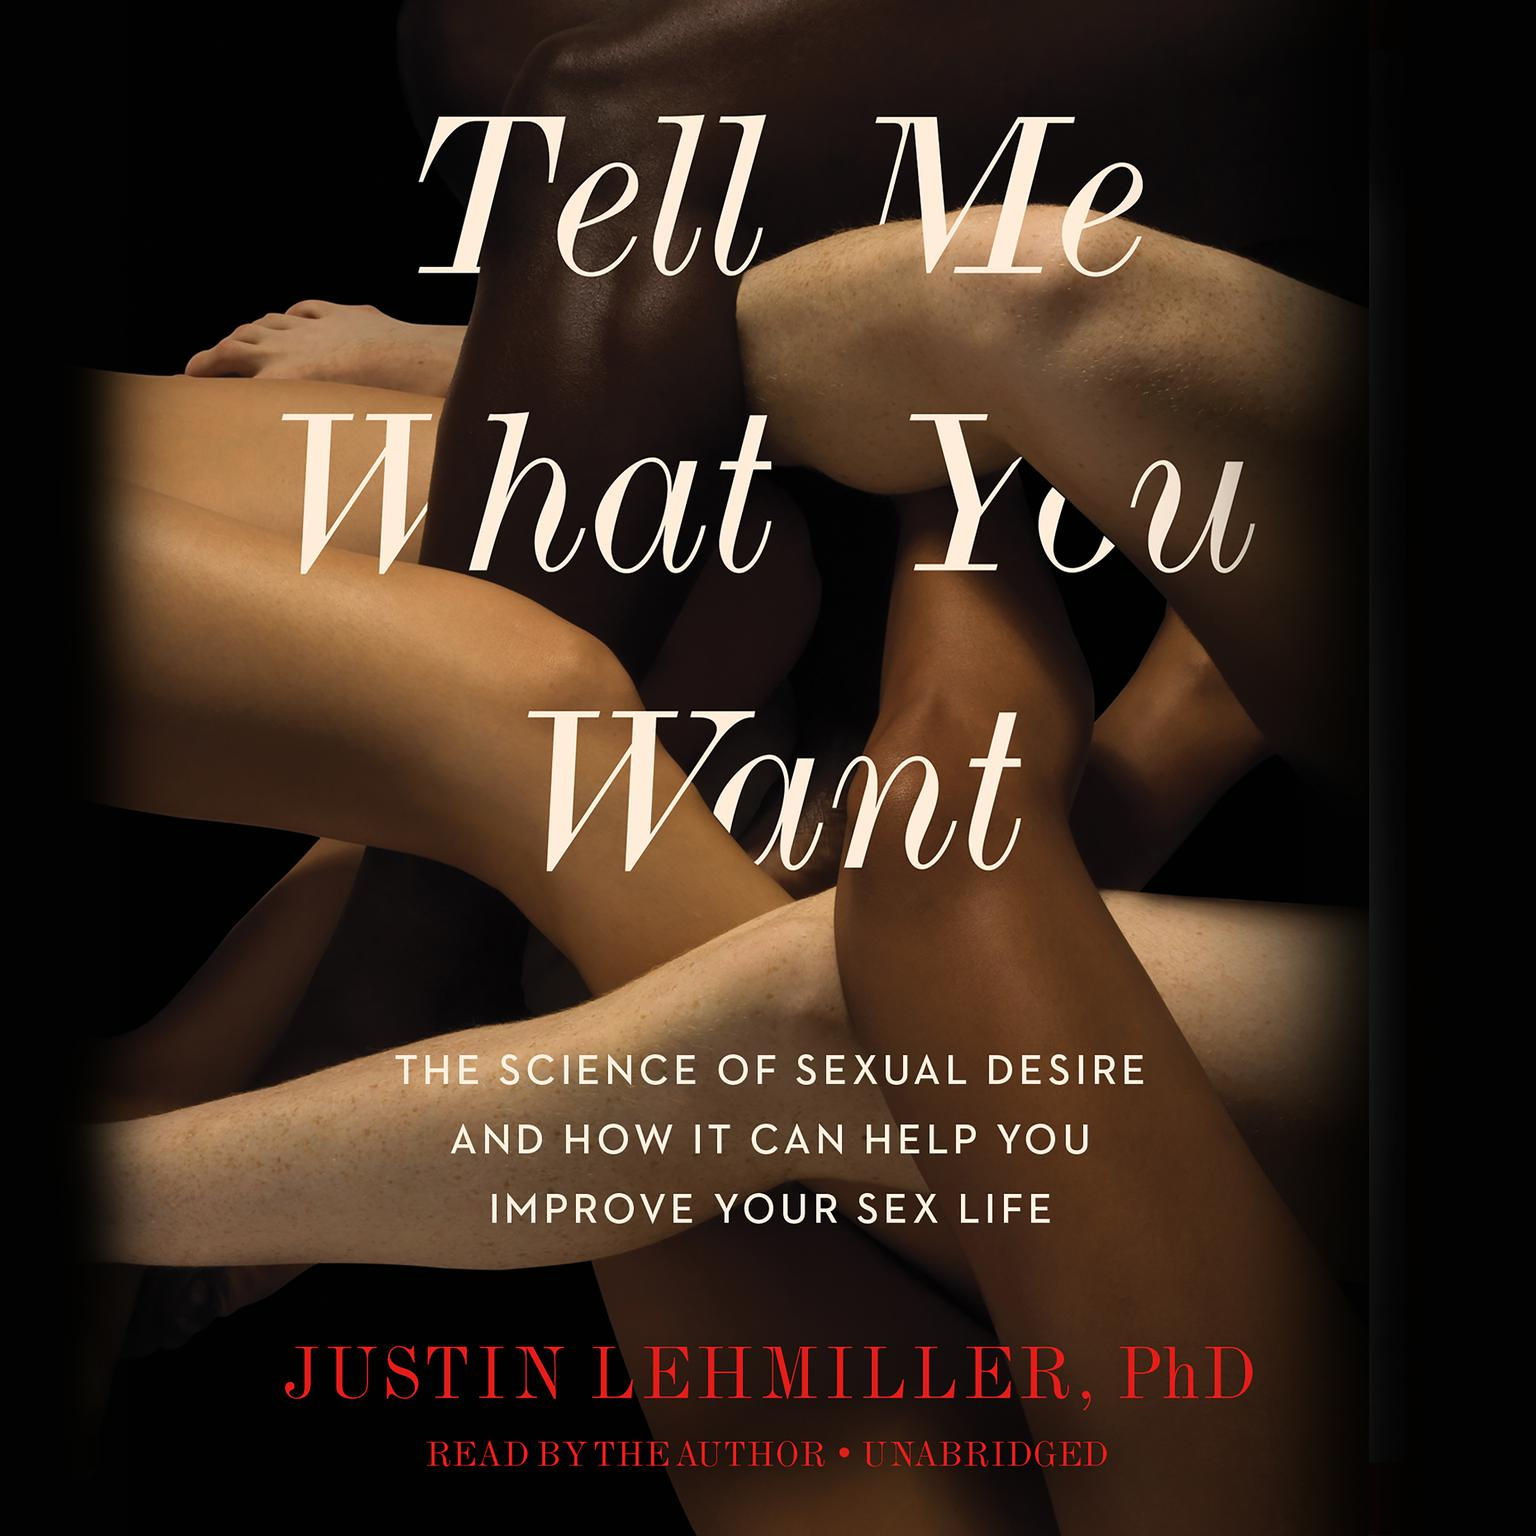 Tell Me What You Want: The Science of Sexual Desire and How It Can Help You Improve Your Sex Life Audiobook, by Justin J. Lehmiller